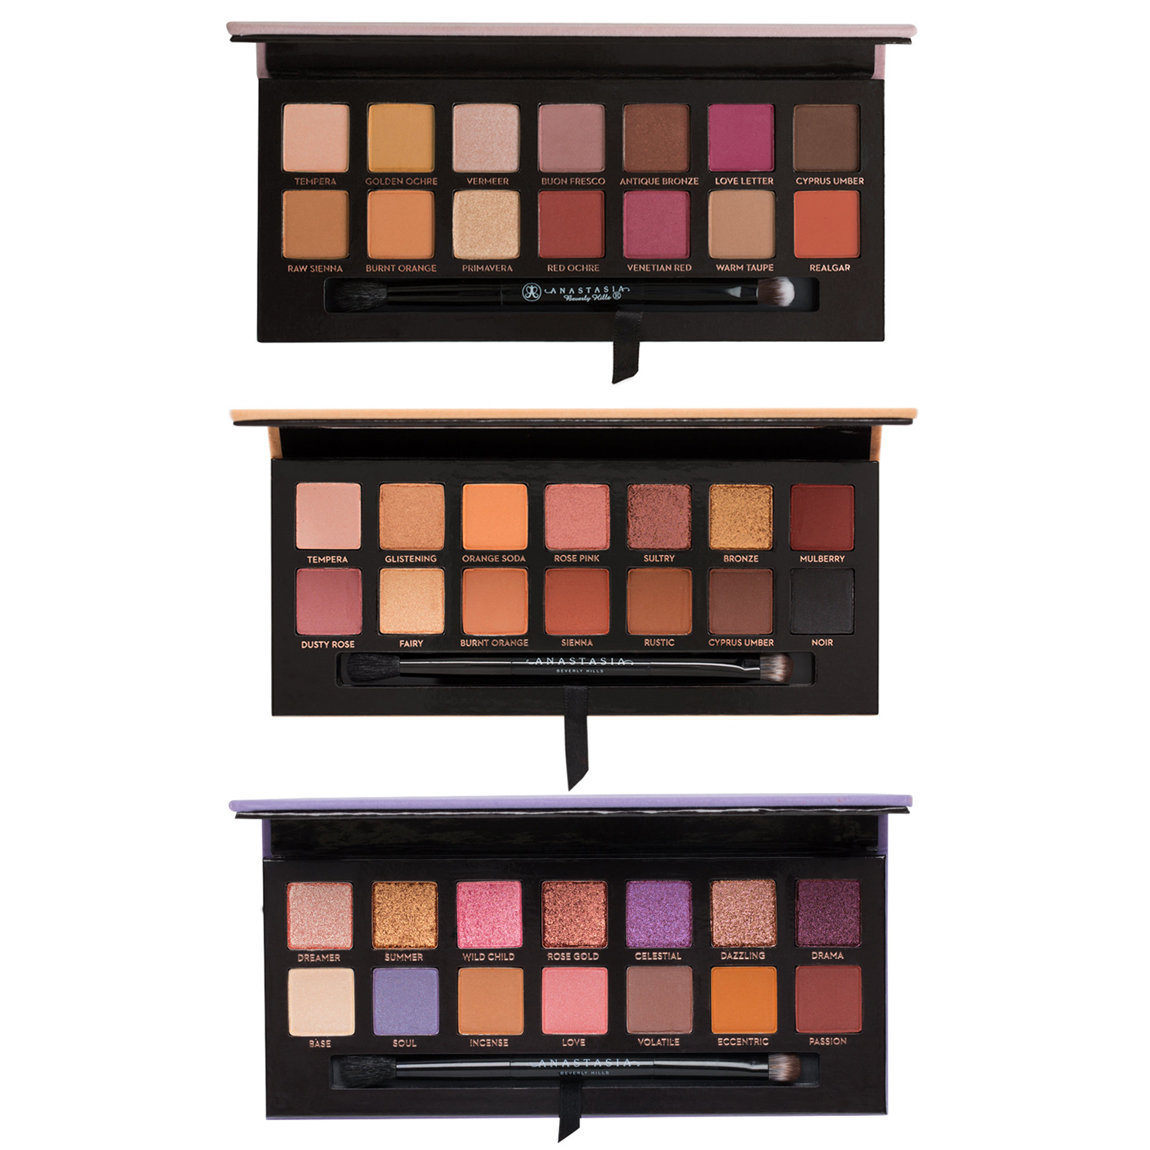 Save when you get three bestselling palettes ($126 value)